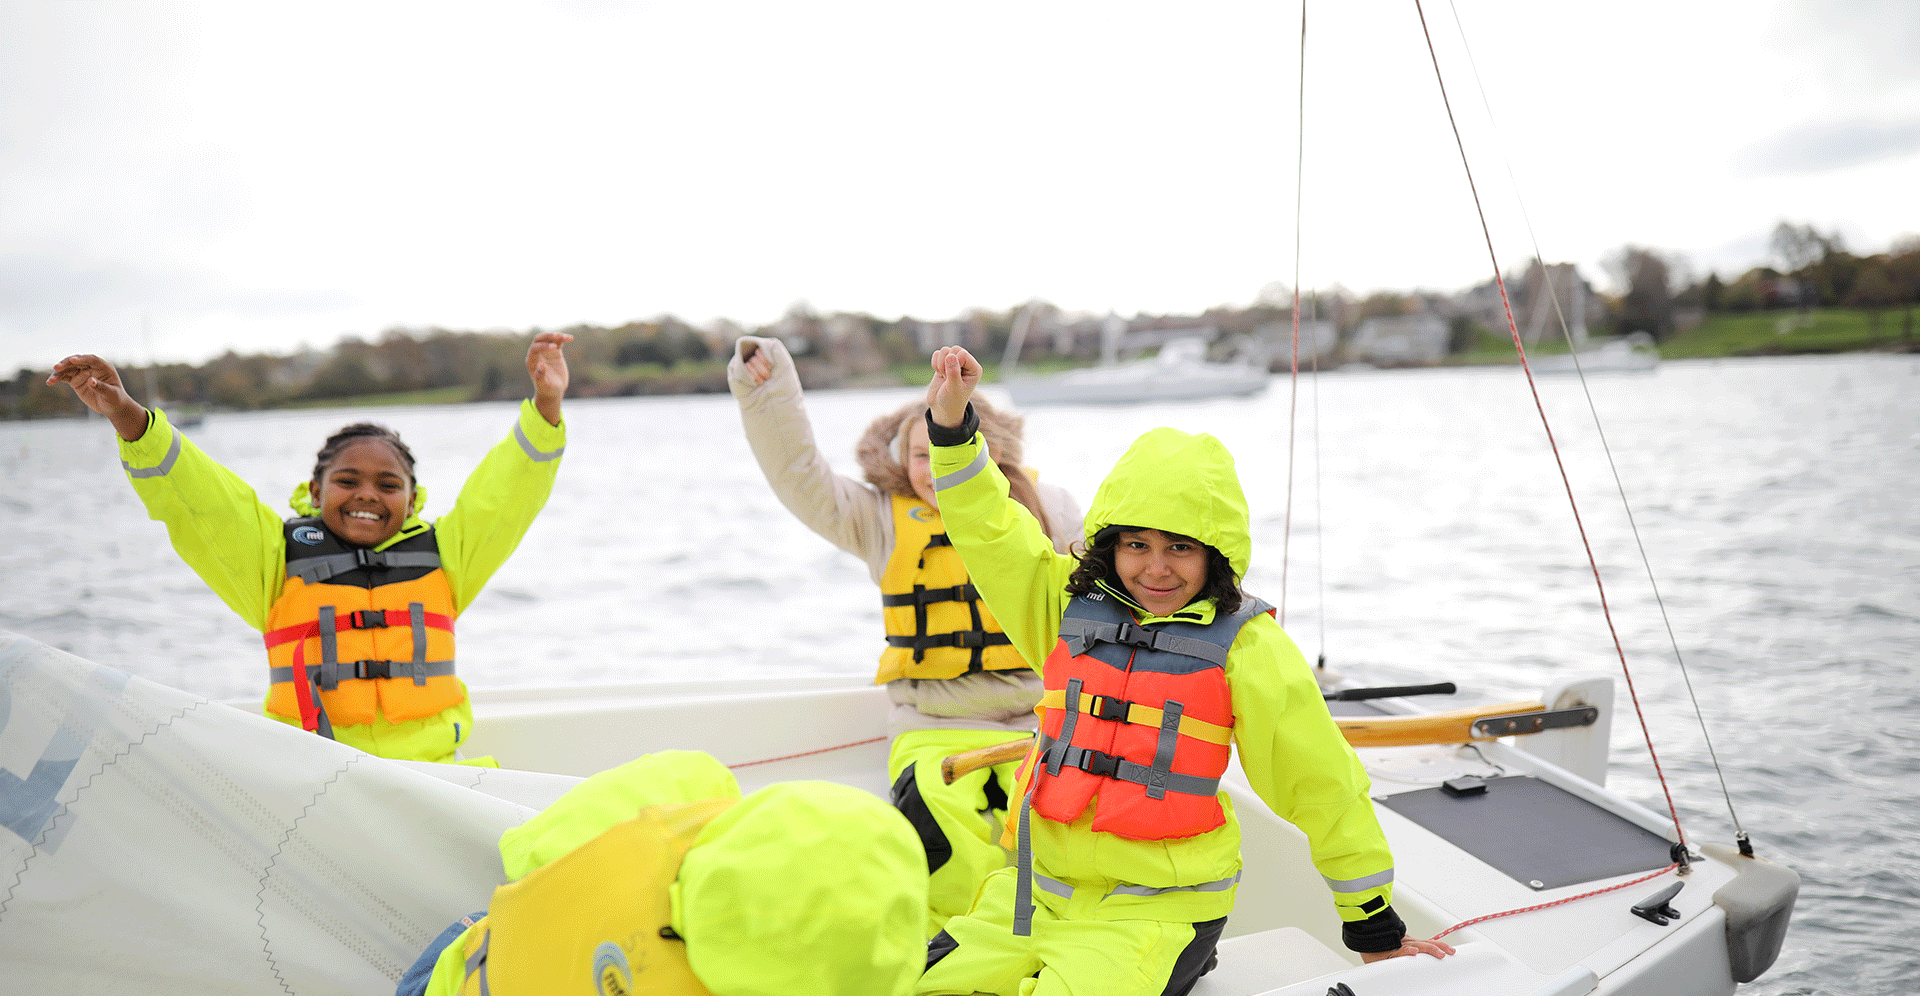 4th Grade Students from Pell Elementary School preparing to set sail in the J/22 at Sail Newport © Maaike Bernstrom